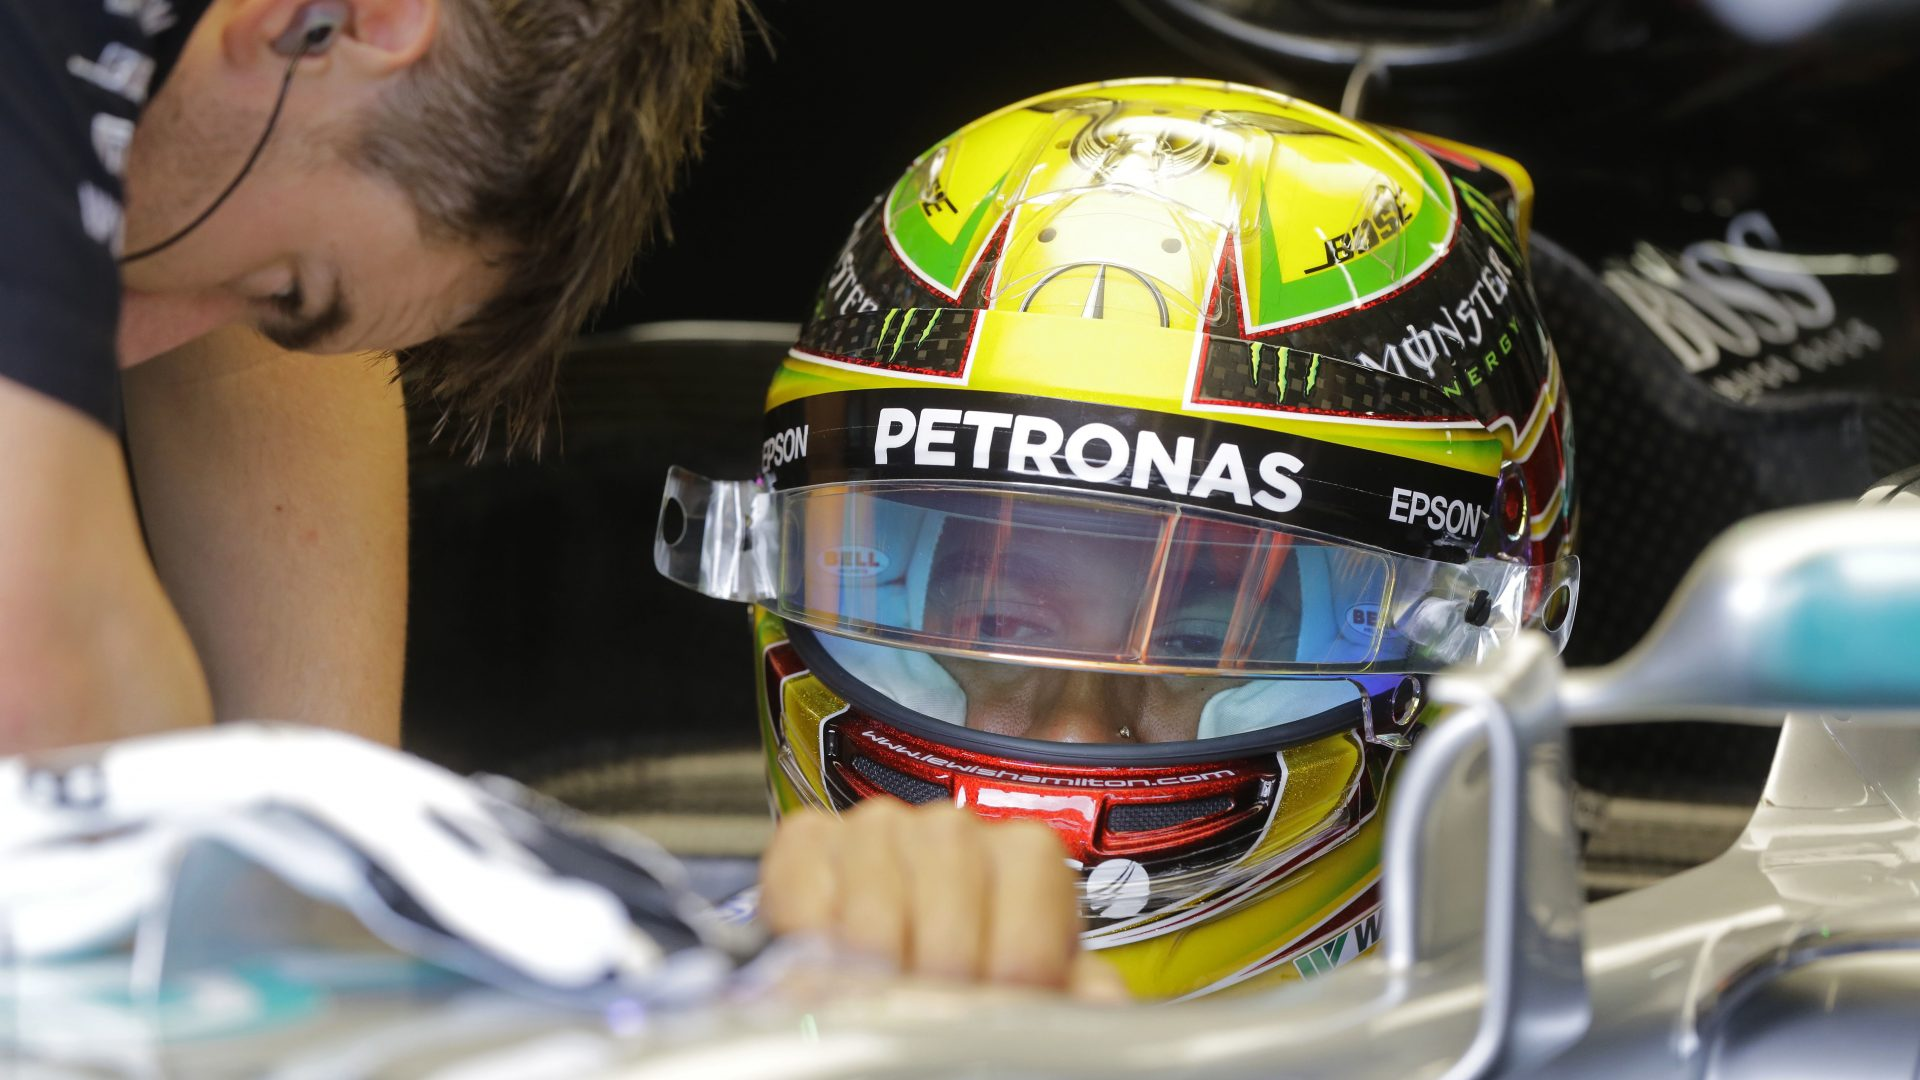 Lewis Hamilton crashed out of qualifying for the Brazilian Grand Prix